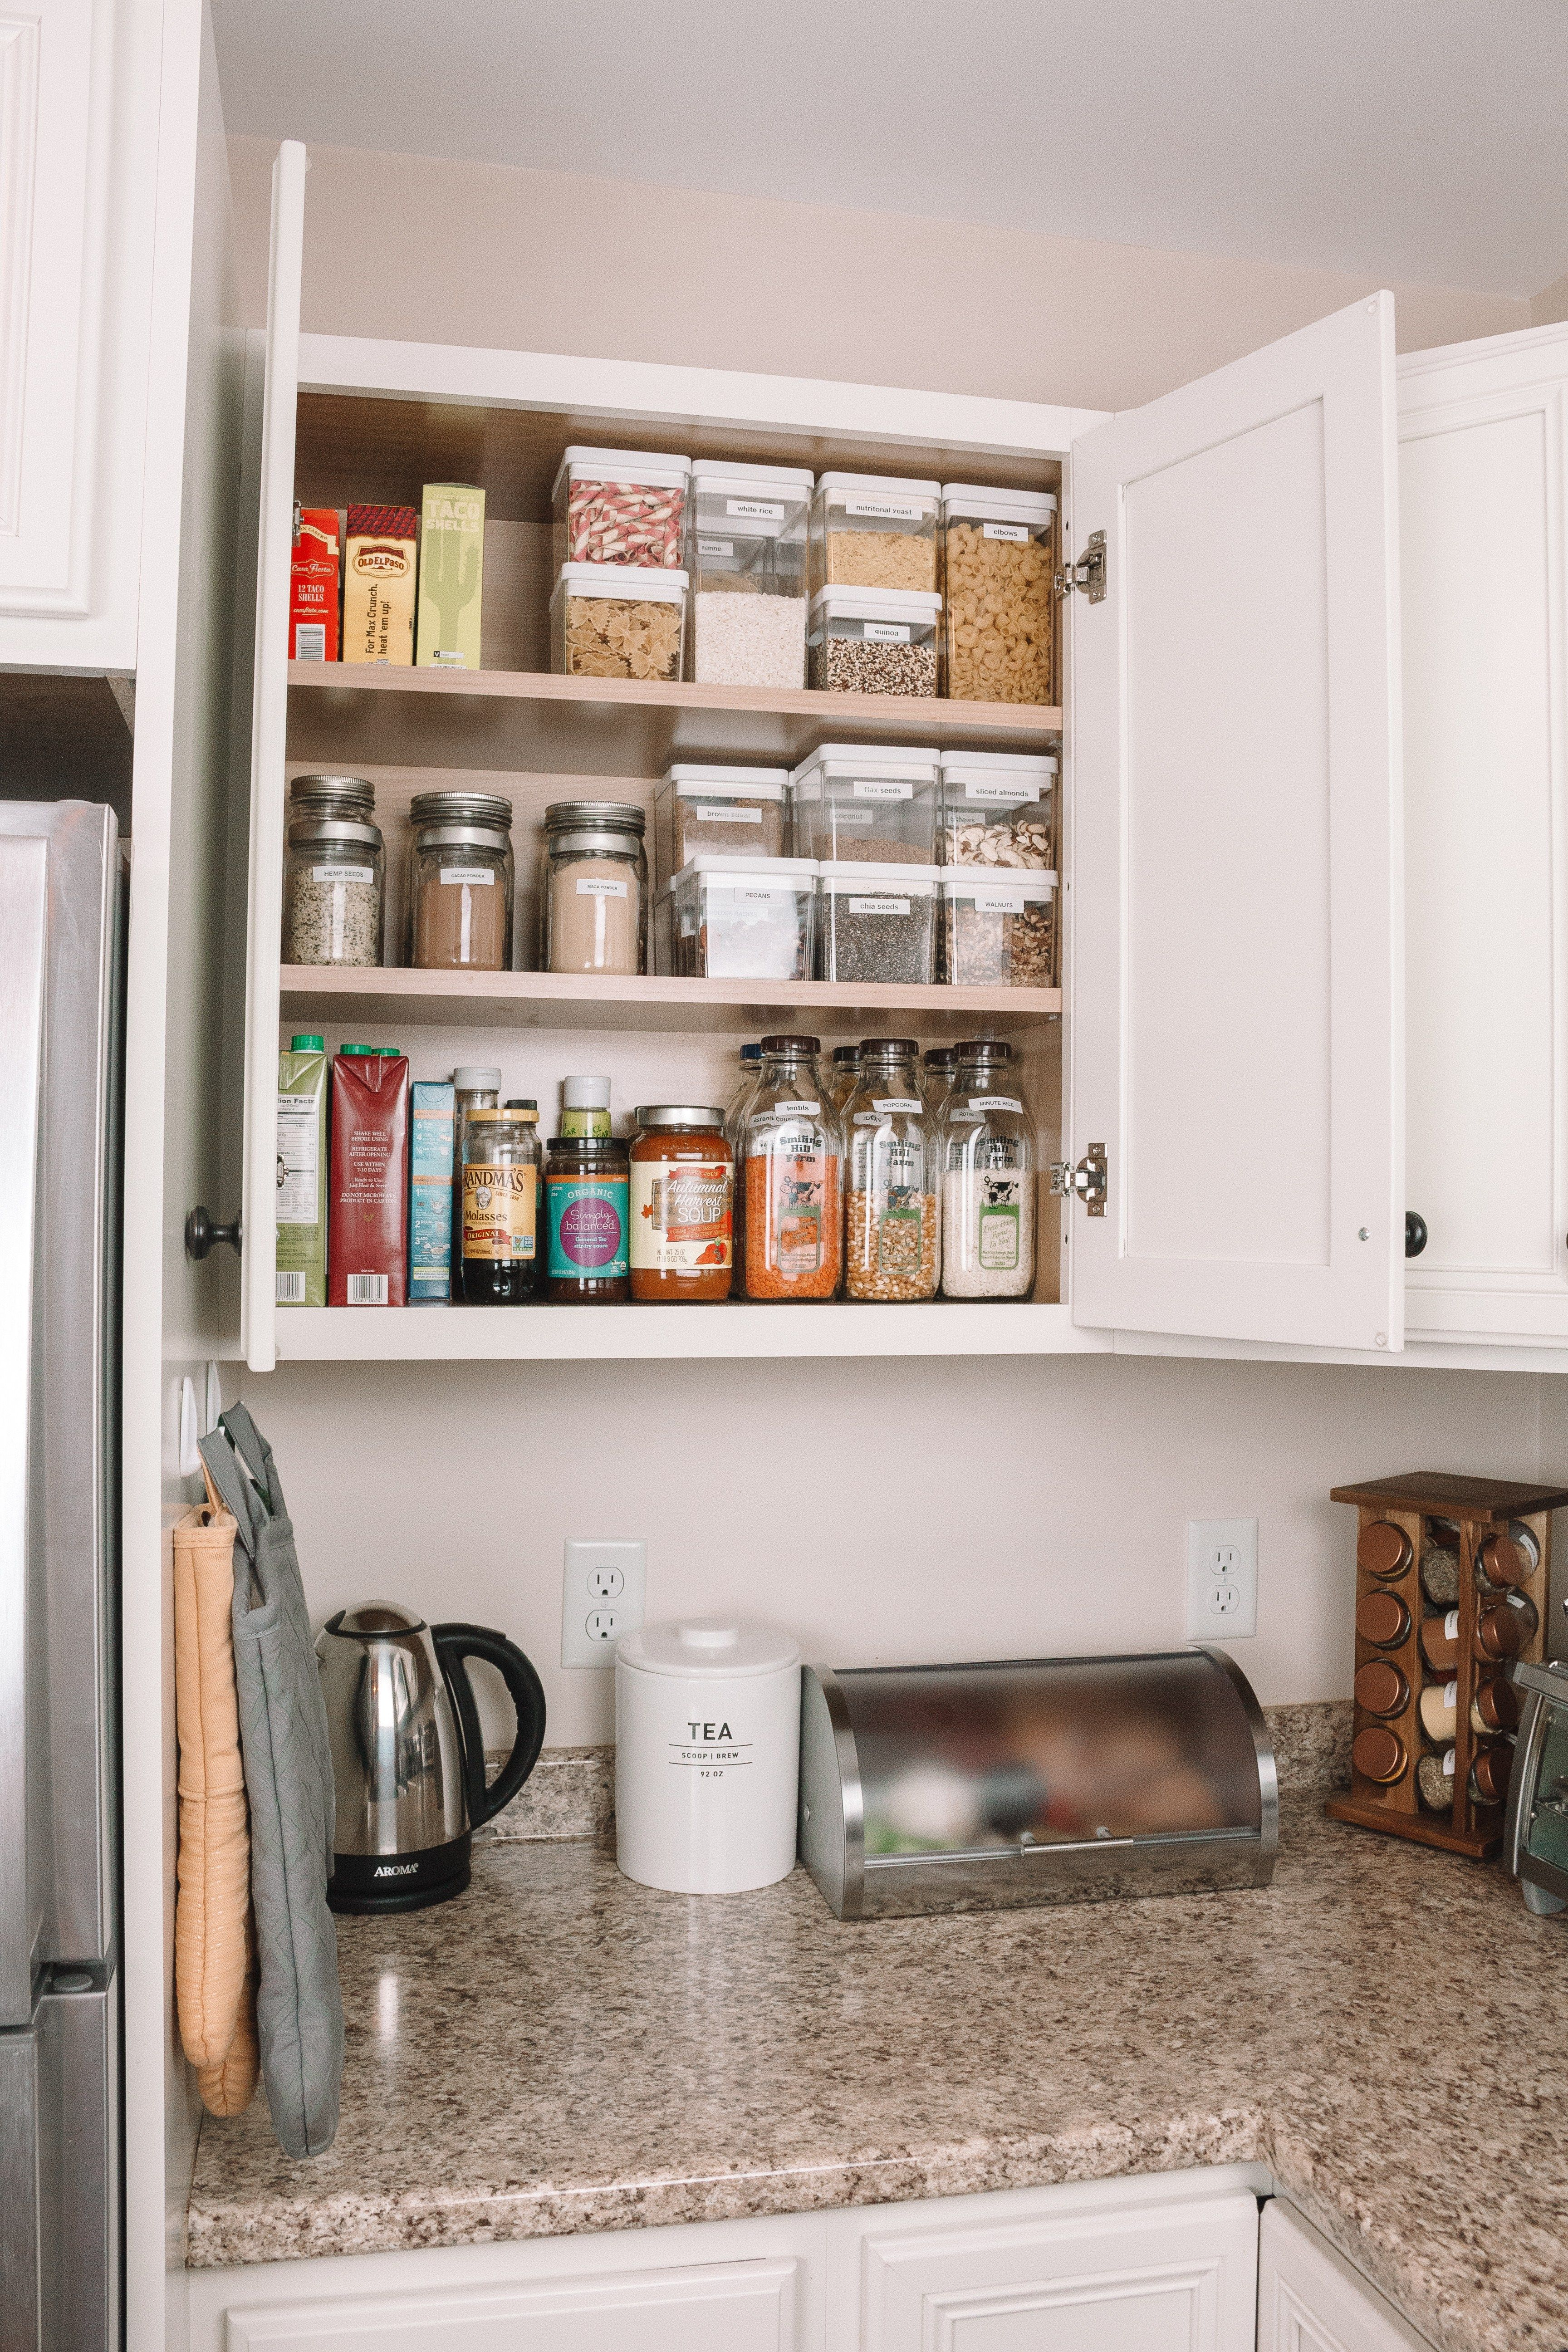 How to Organize Your Pantry in an Apartment | Hey Its Camille Grey #apartment #smallspace #storage #pantry #organizing #organize